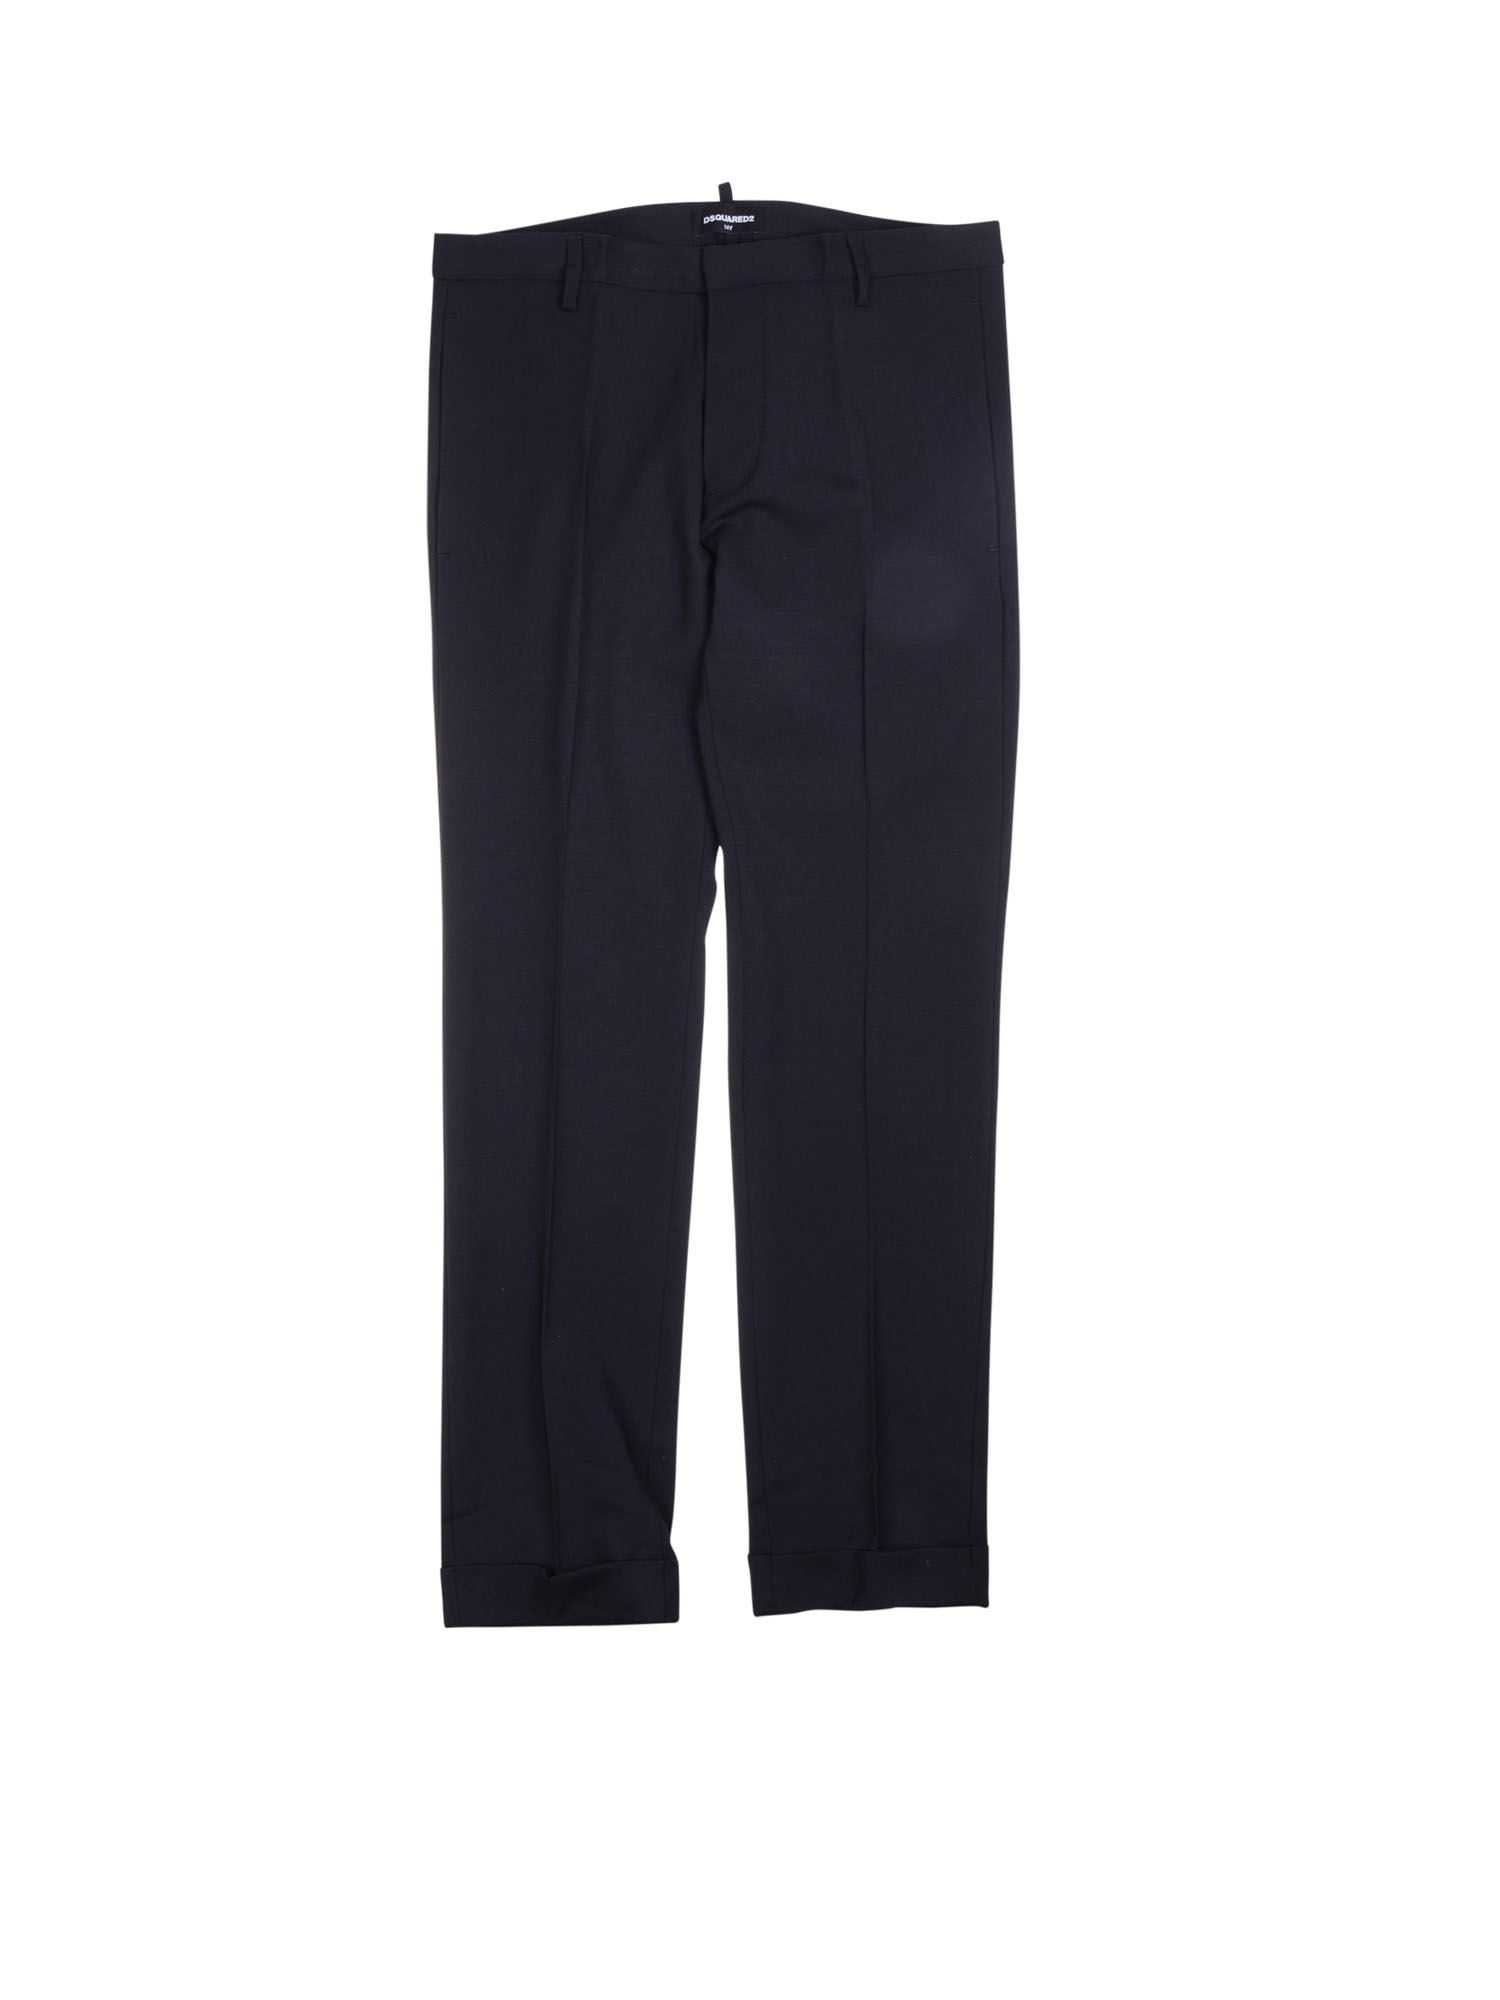 Dsquared2 CLASSIC PANTS IN BLACK